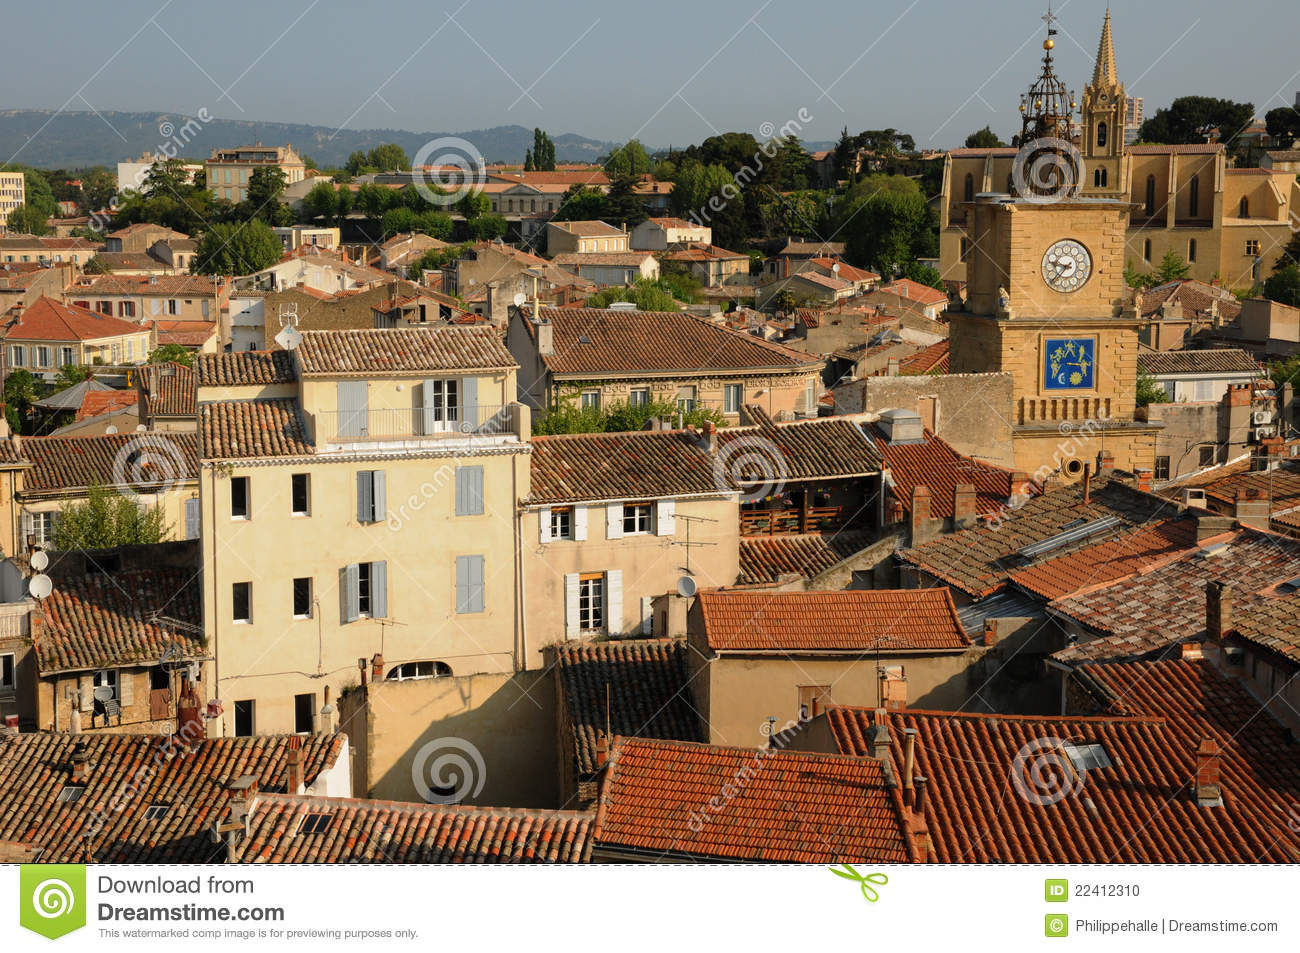 Salon de provence stock photo image 22412310 - Seat salon de provence ...